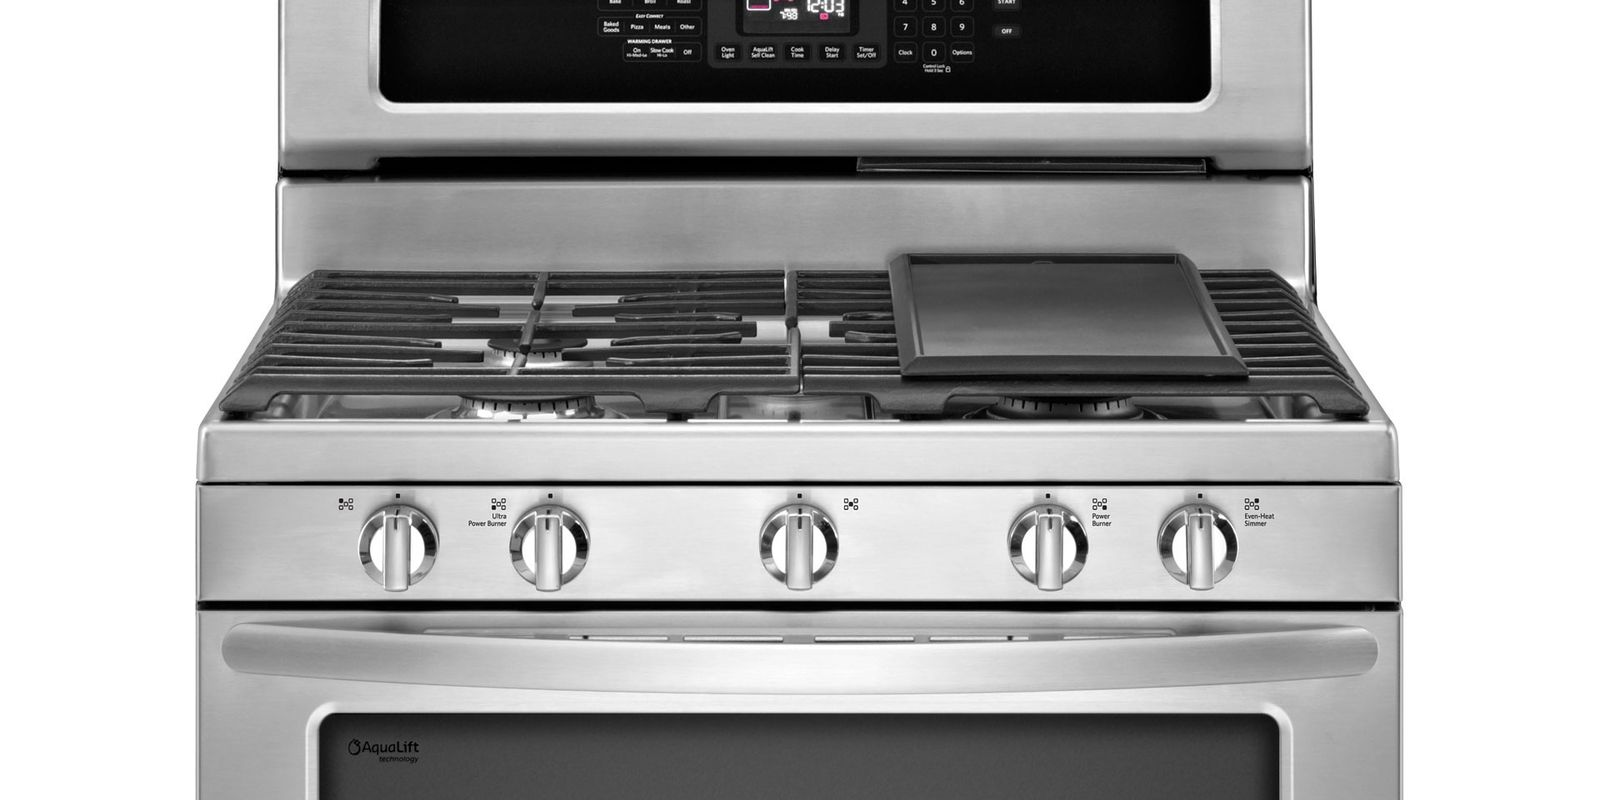 kitchenaid gas stove reviews blogs workanyware co uk u2022 rh blogs workanyware co uk